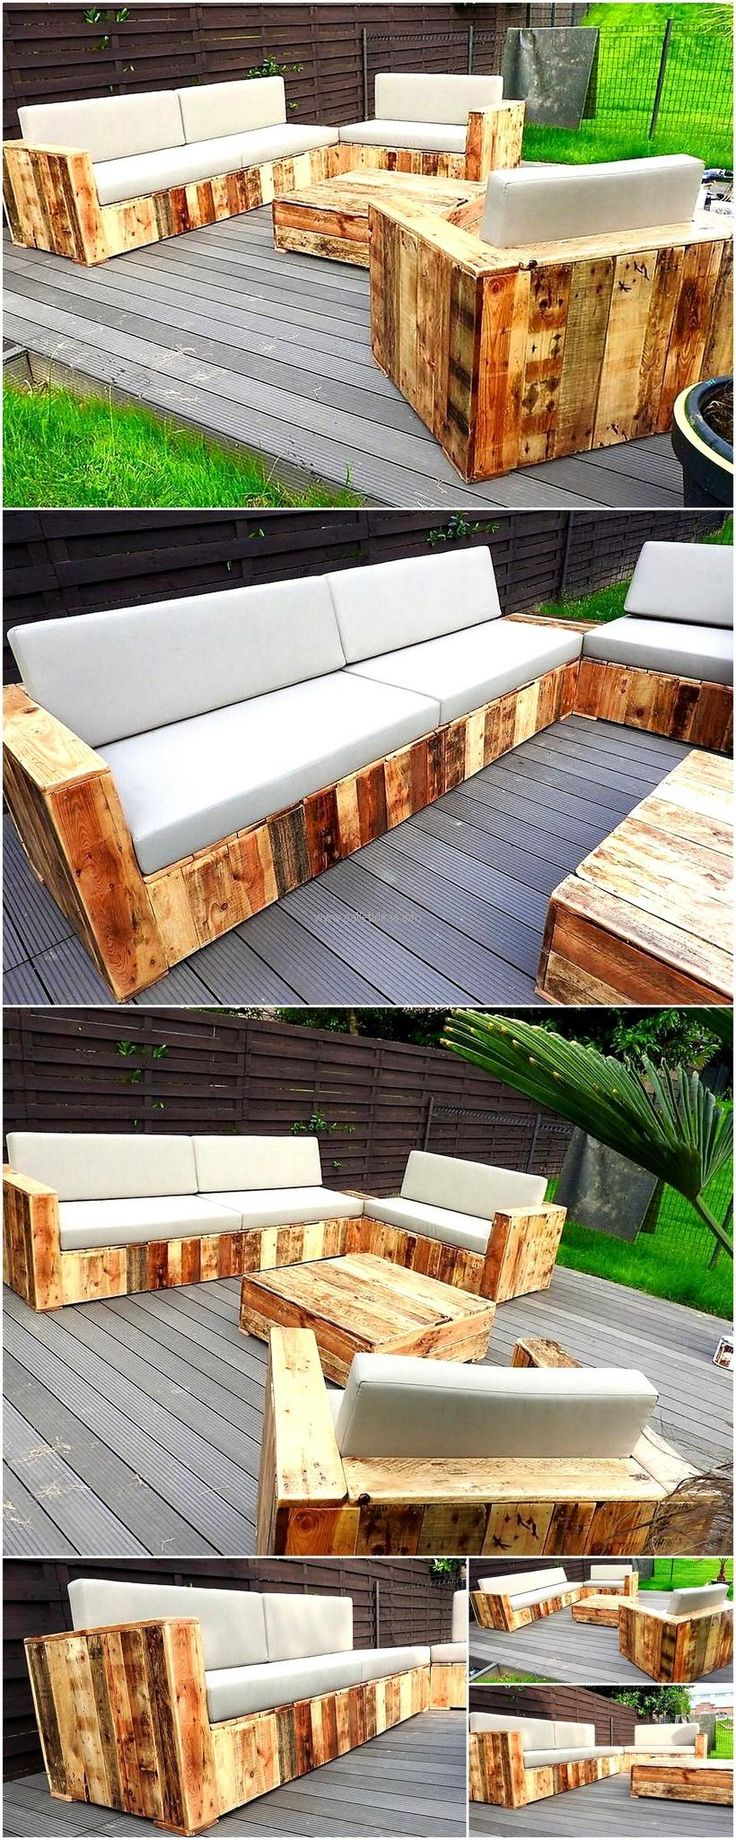 outdoor wood pallet ideas. easy to make wood pallet furniture ideas outdoor o